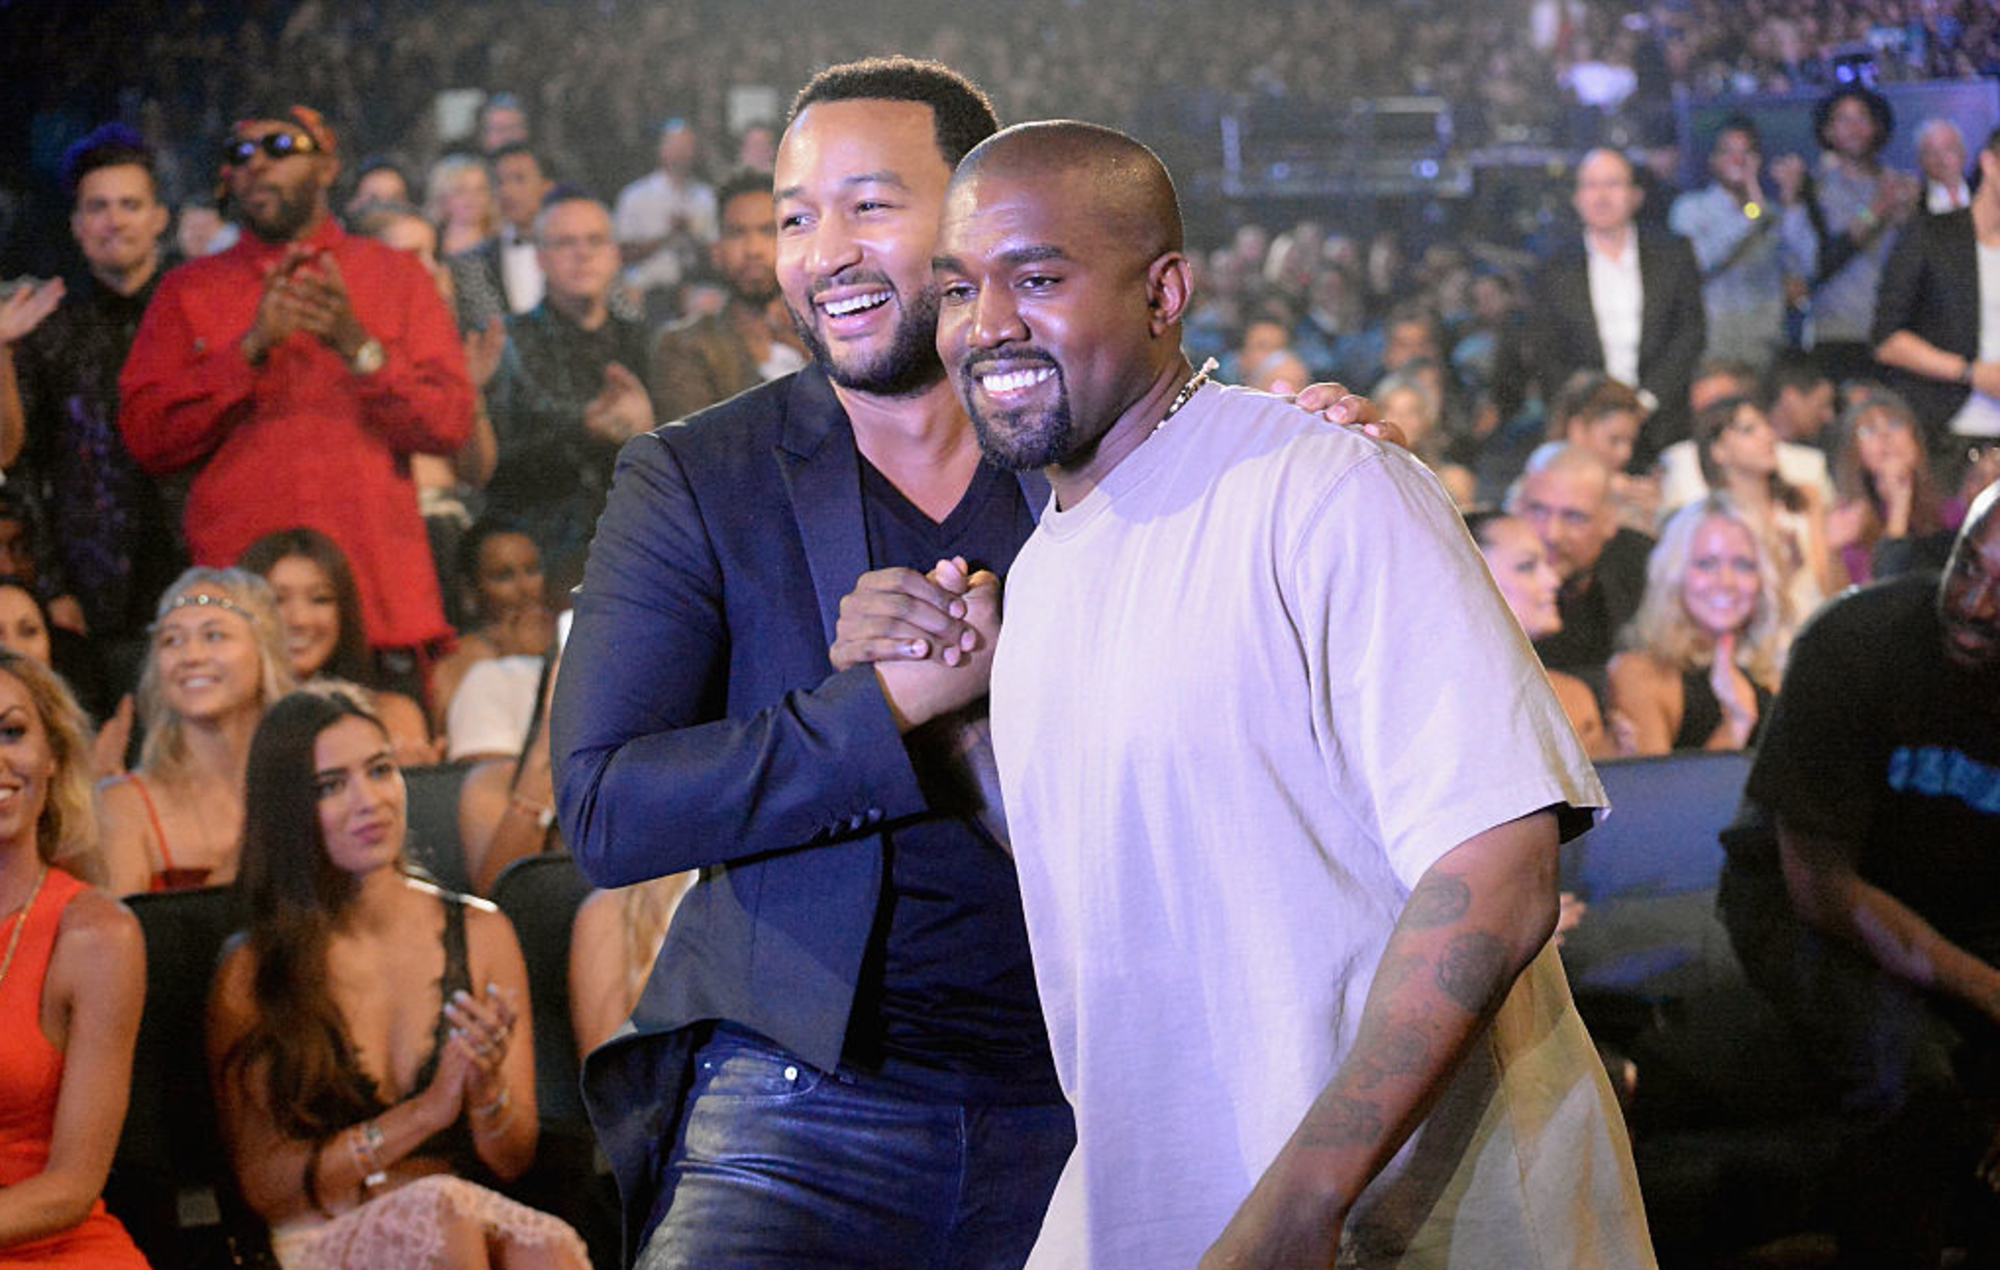 John Legend says he hasn't reconciled with Kanye West since Donald Trump fallout in 2018 thumbnail